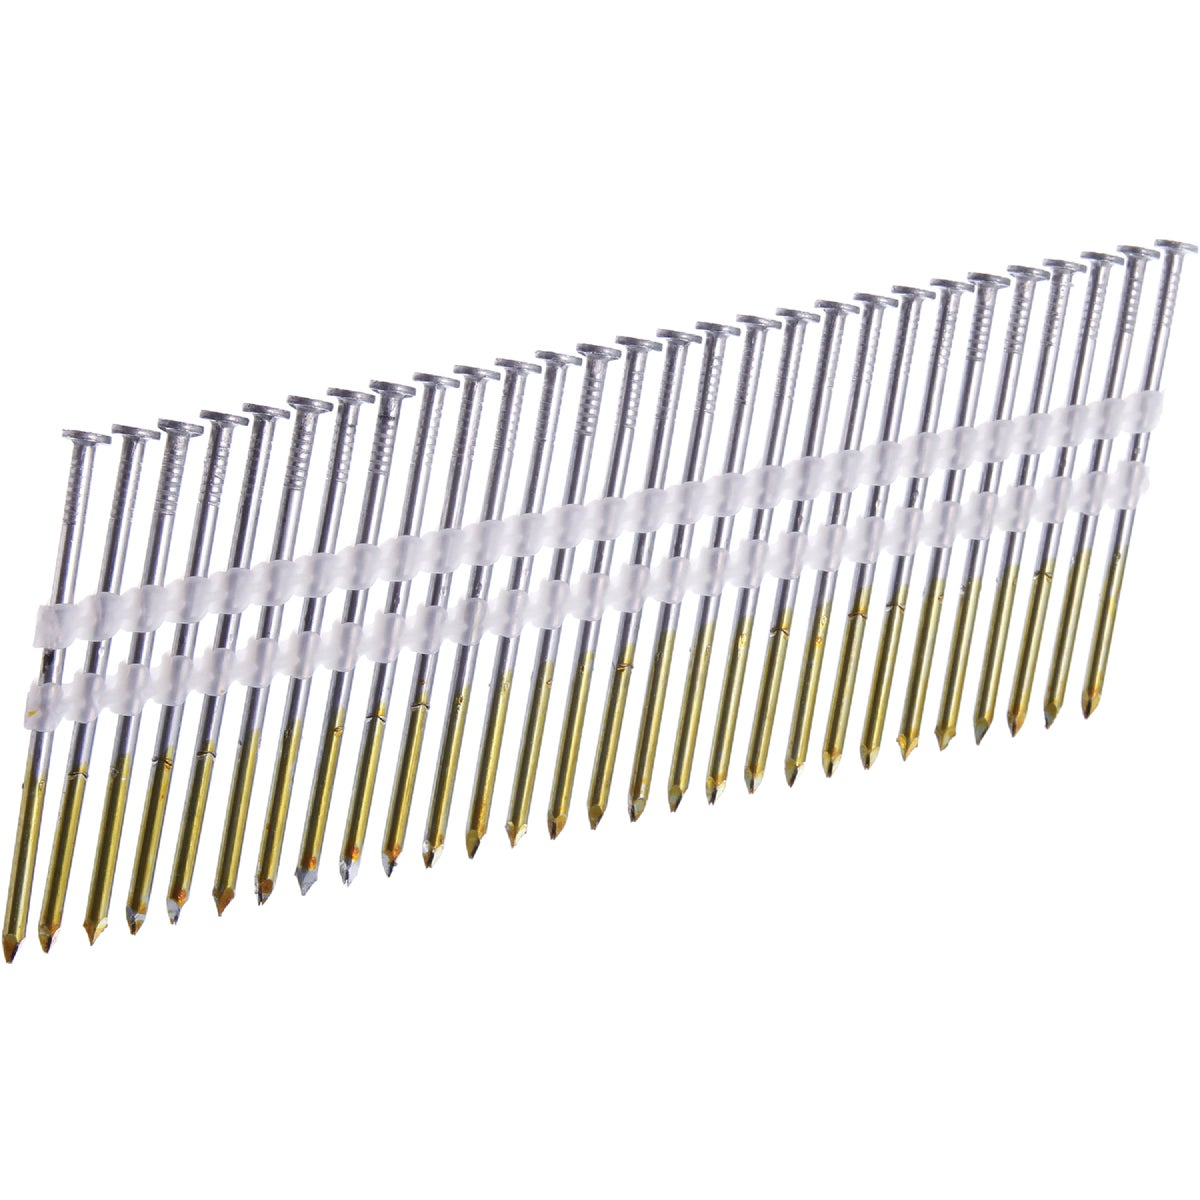 "2-3/8"" FRAMING NAIL - GL24ASBS by Senco Brands"